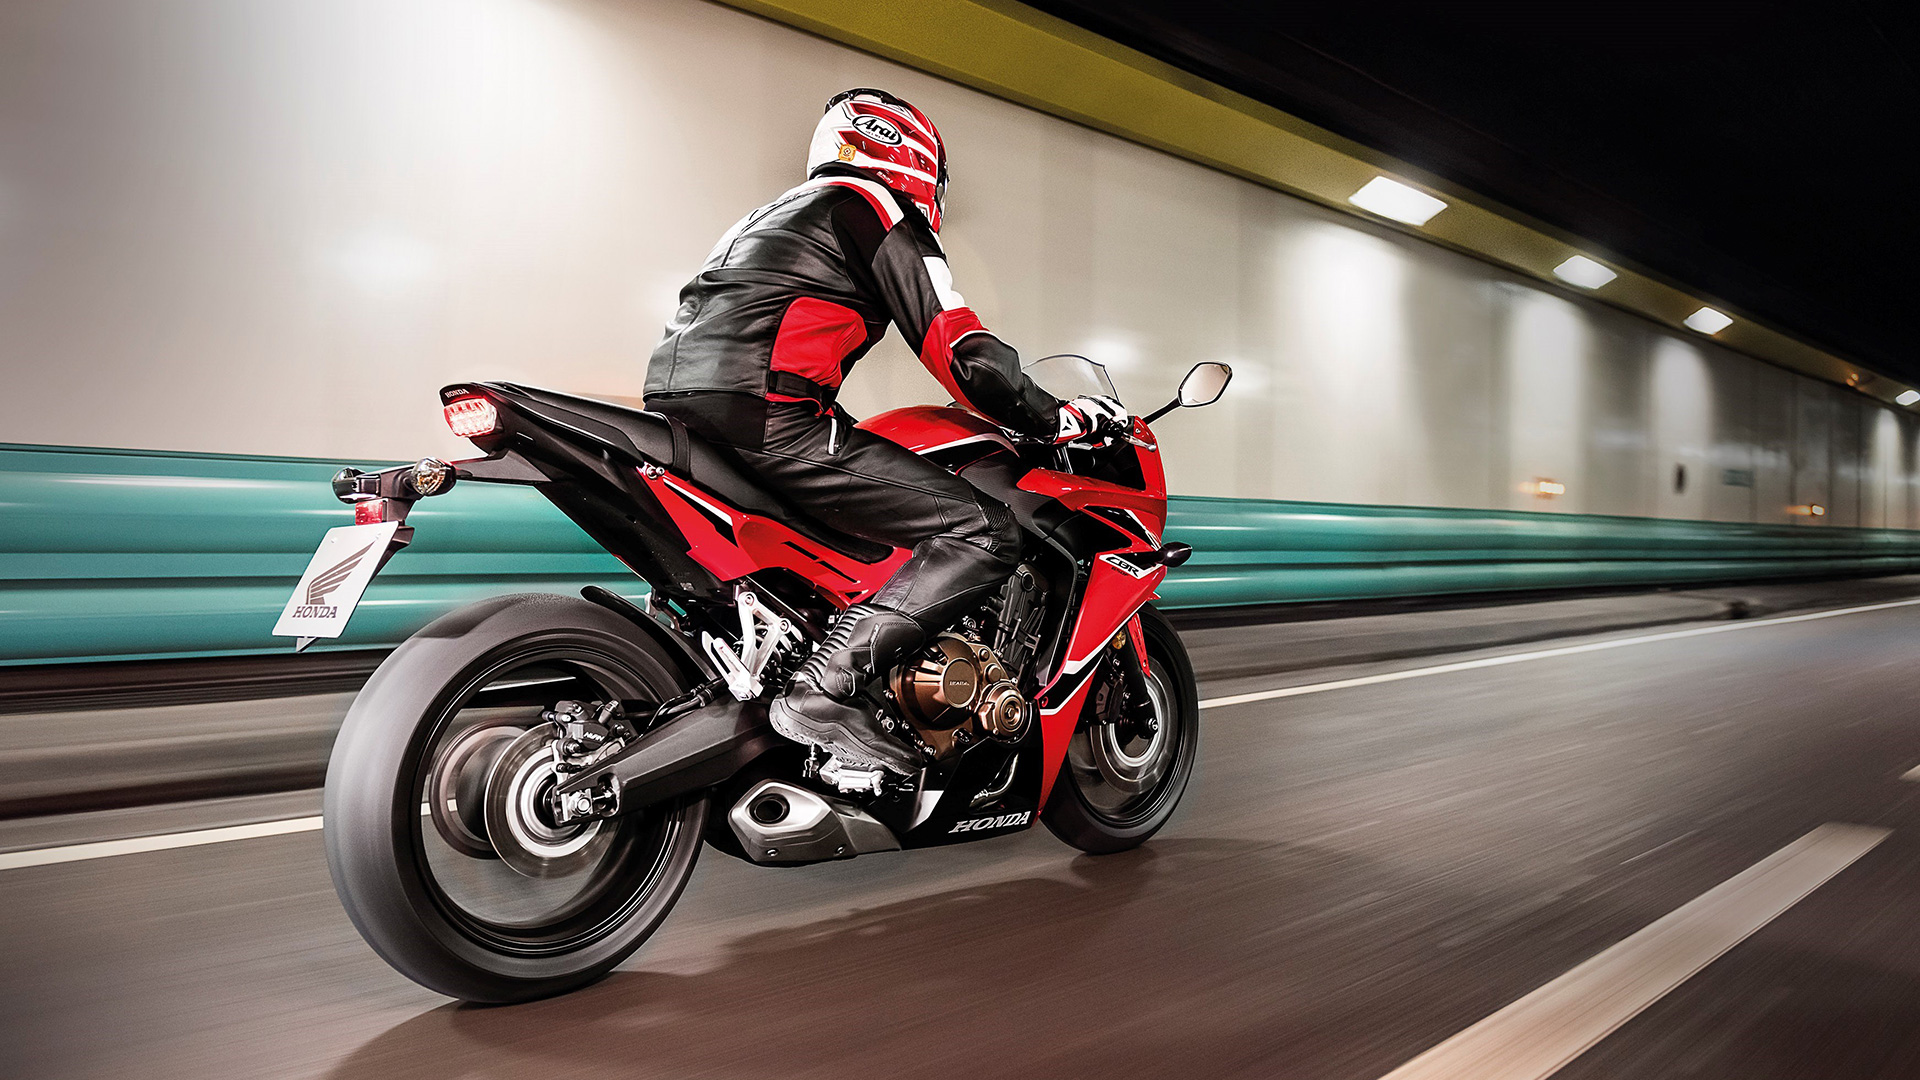 Honda CBR650F 2017 - Price, Mileage, Reviews, Specification, Gallery - Overdrive